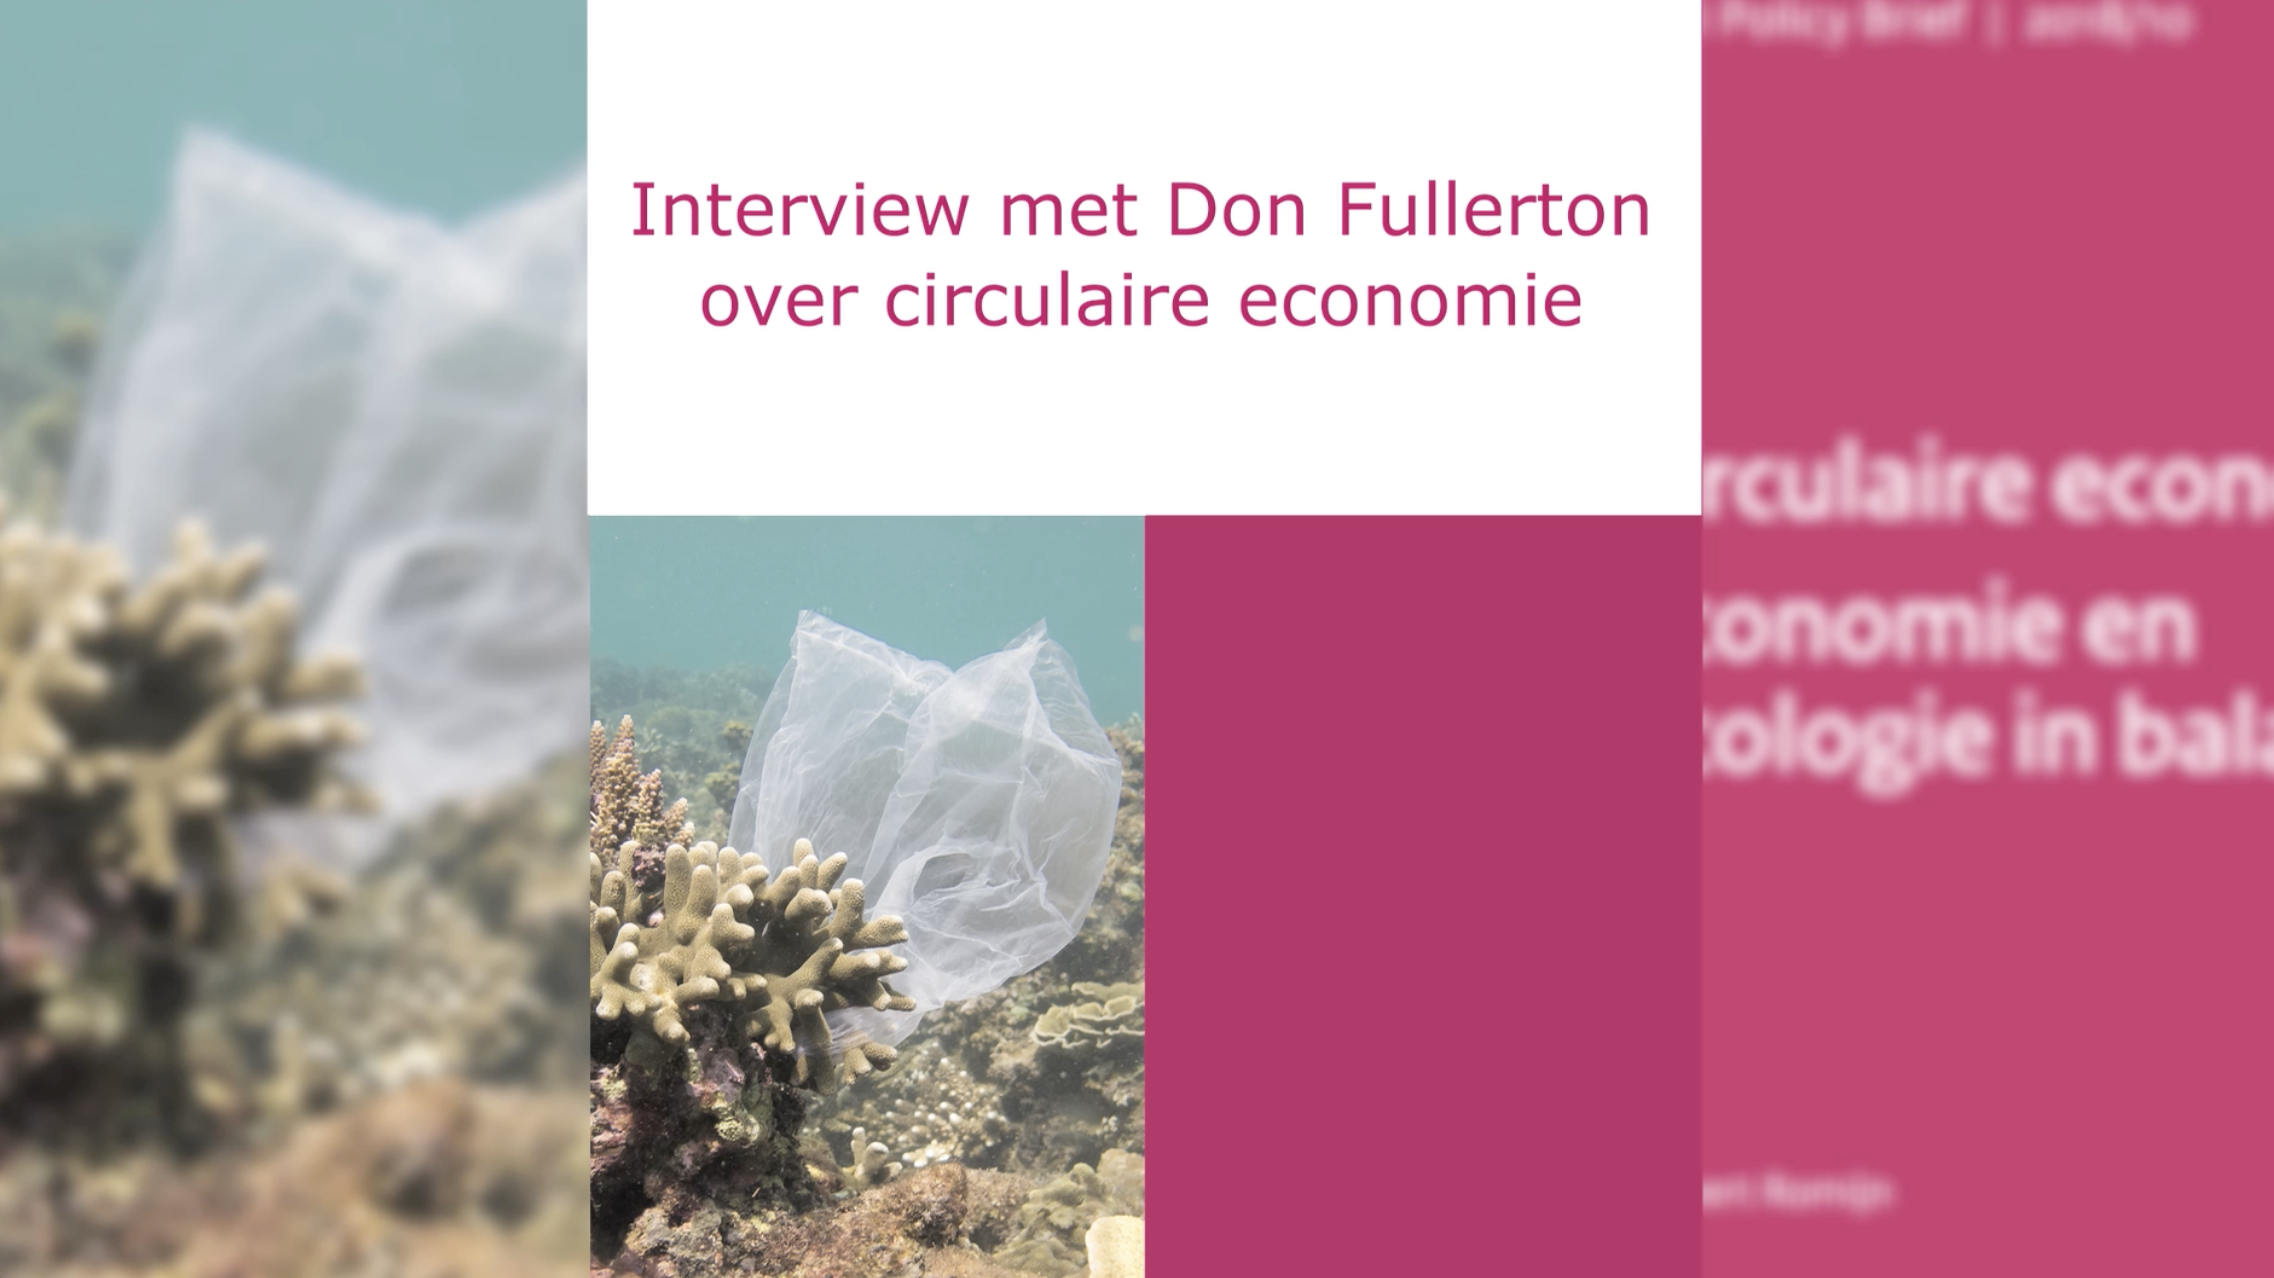 Don Fullerton over circulaire economie